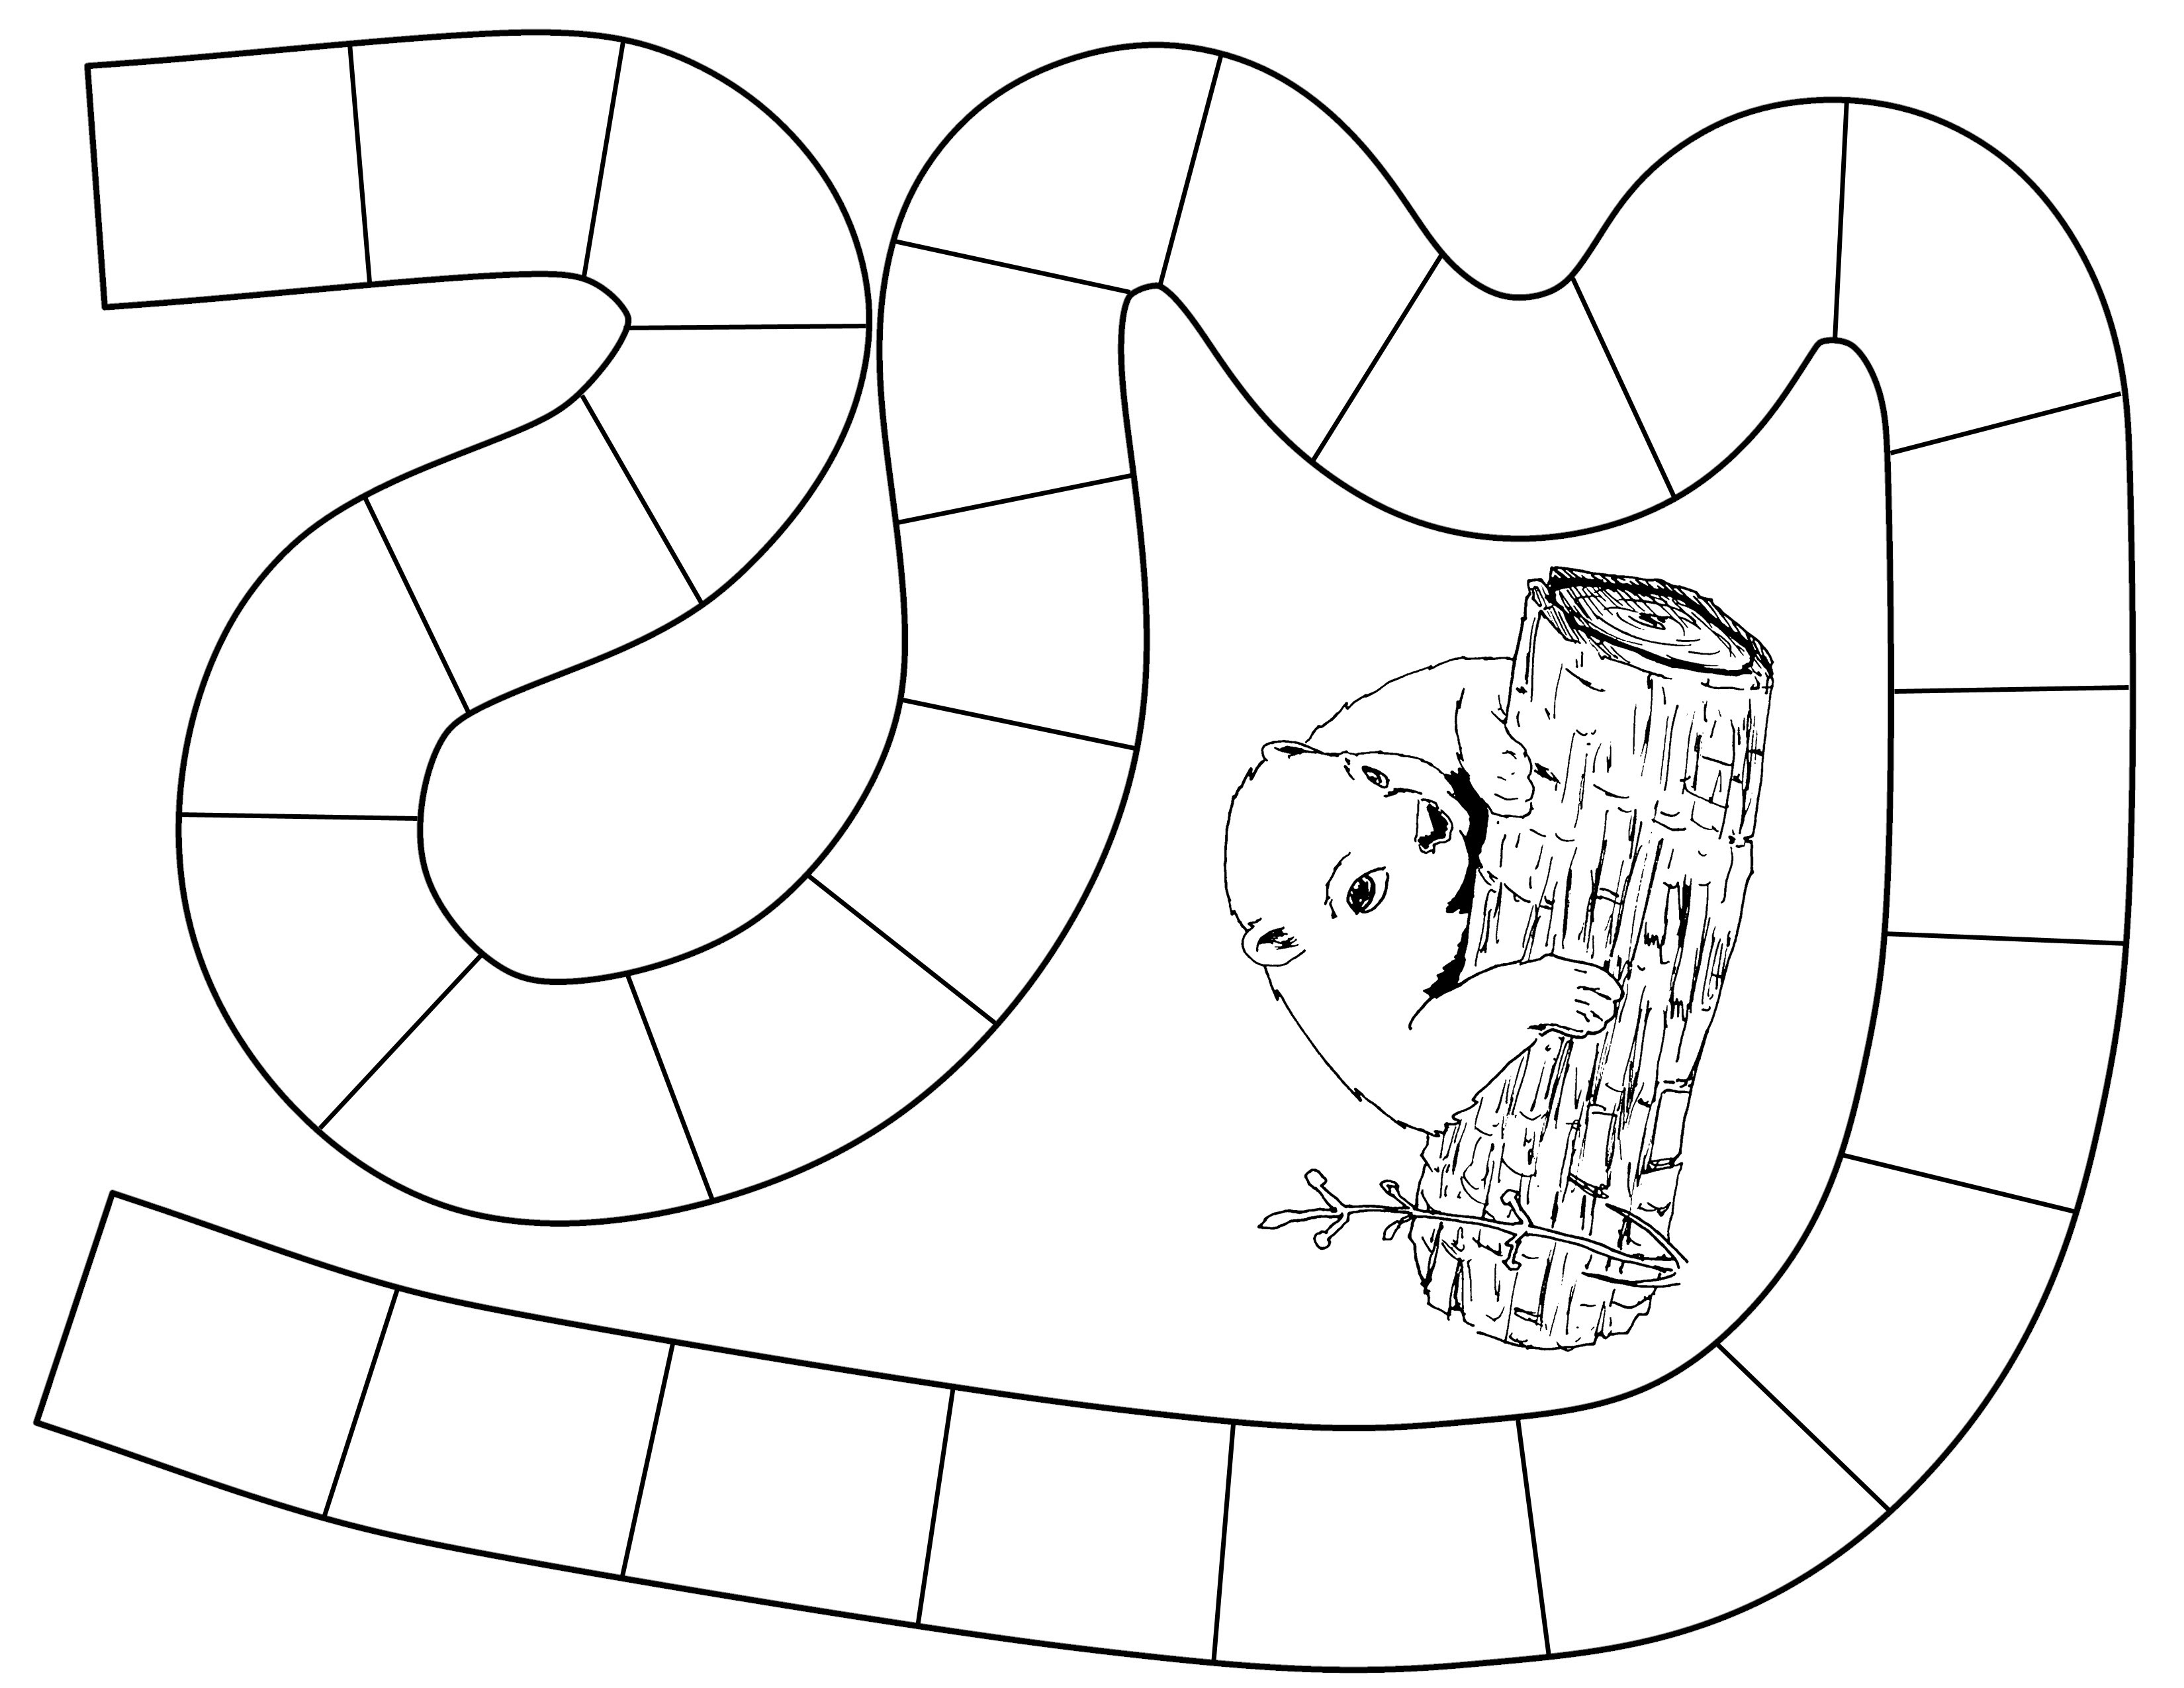 Board Game Coloring Pages at GetColorings.com | Free ...